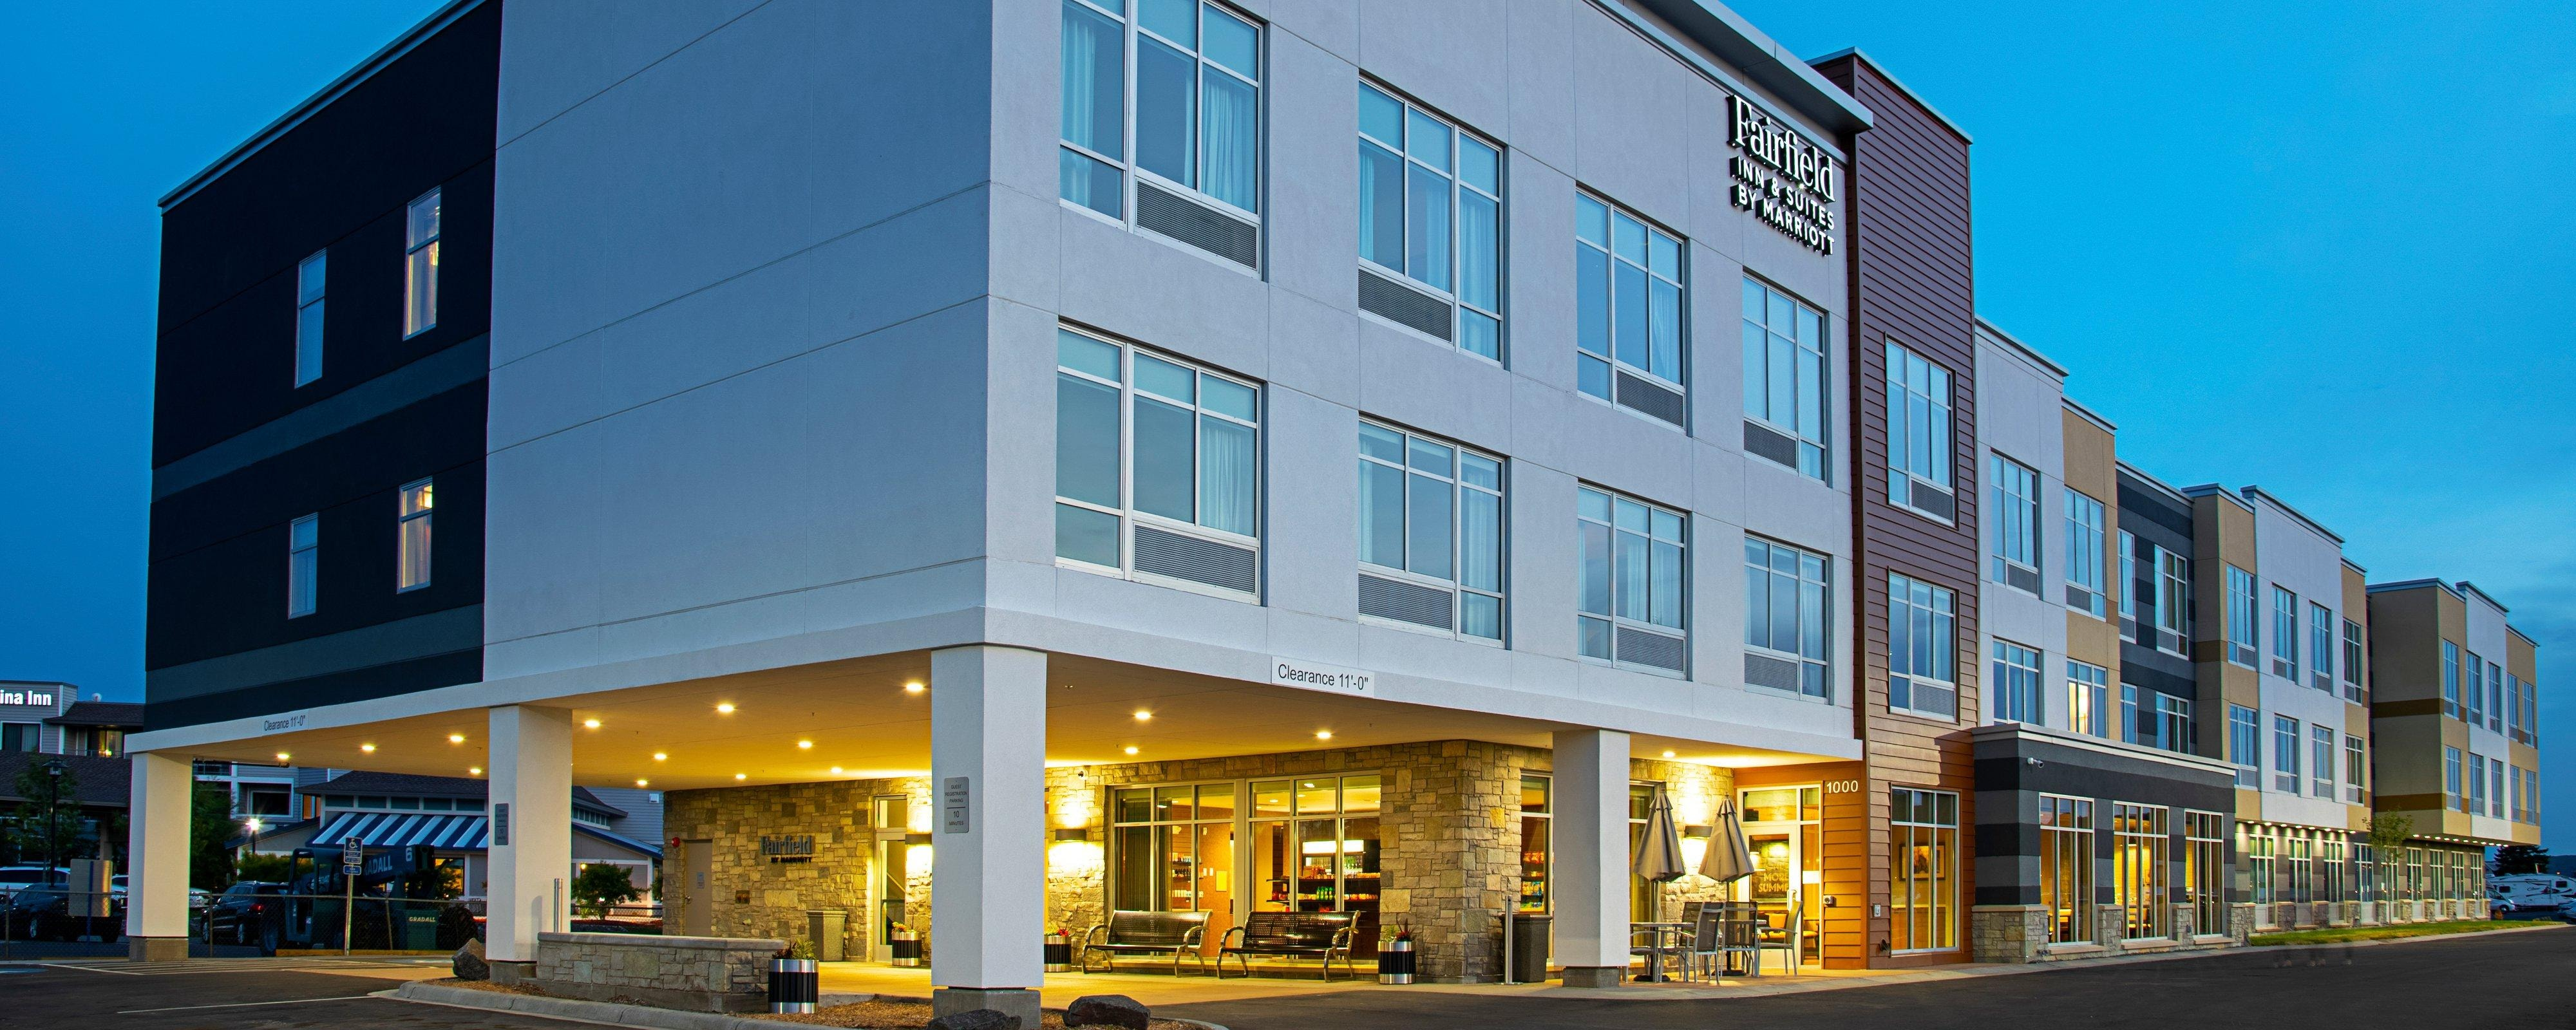 Suites Hotel Duluth Discount Code